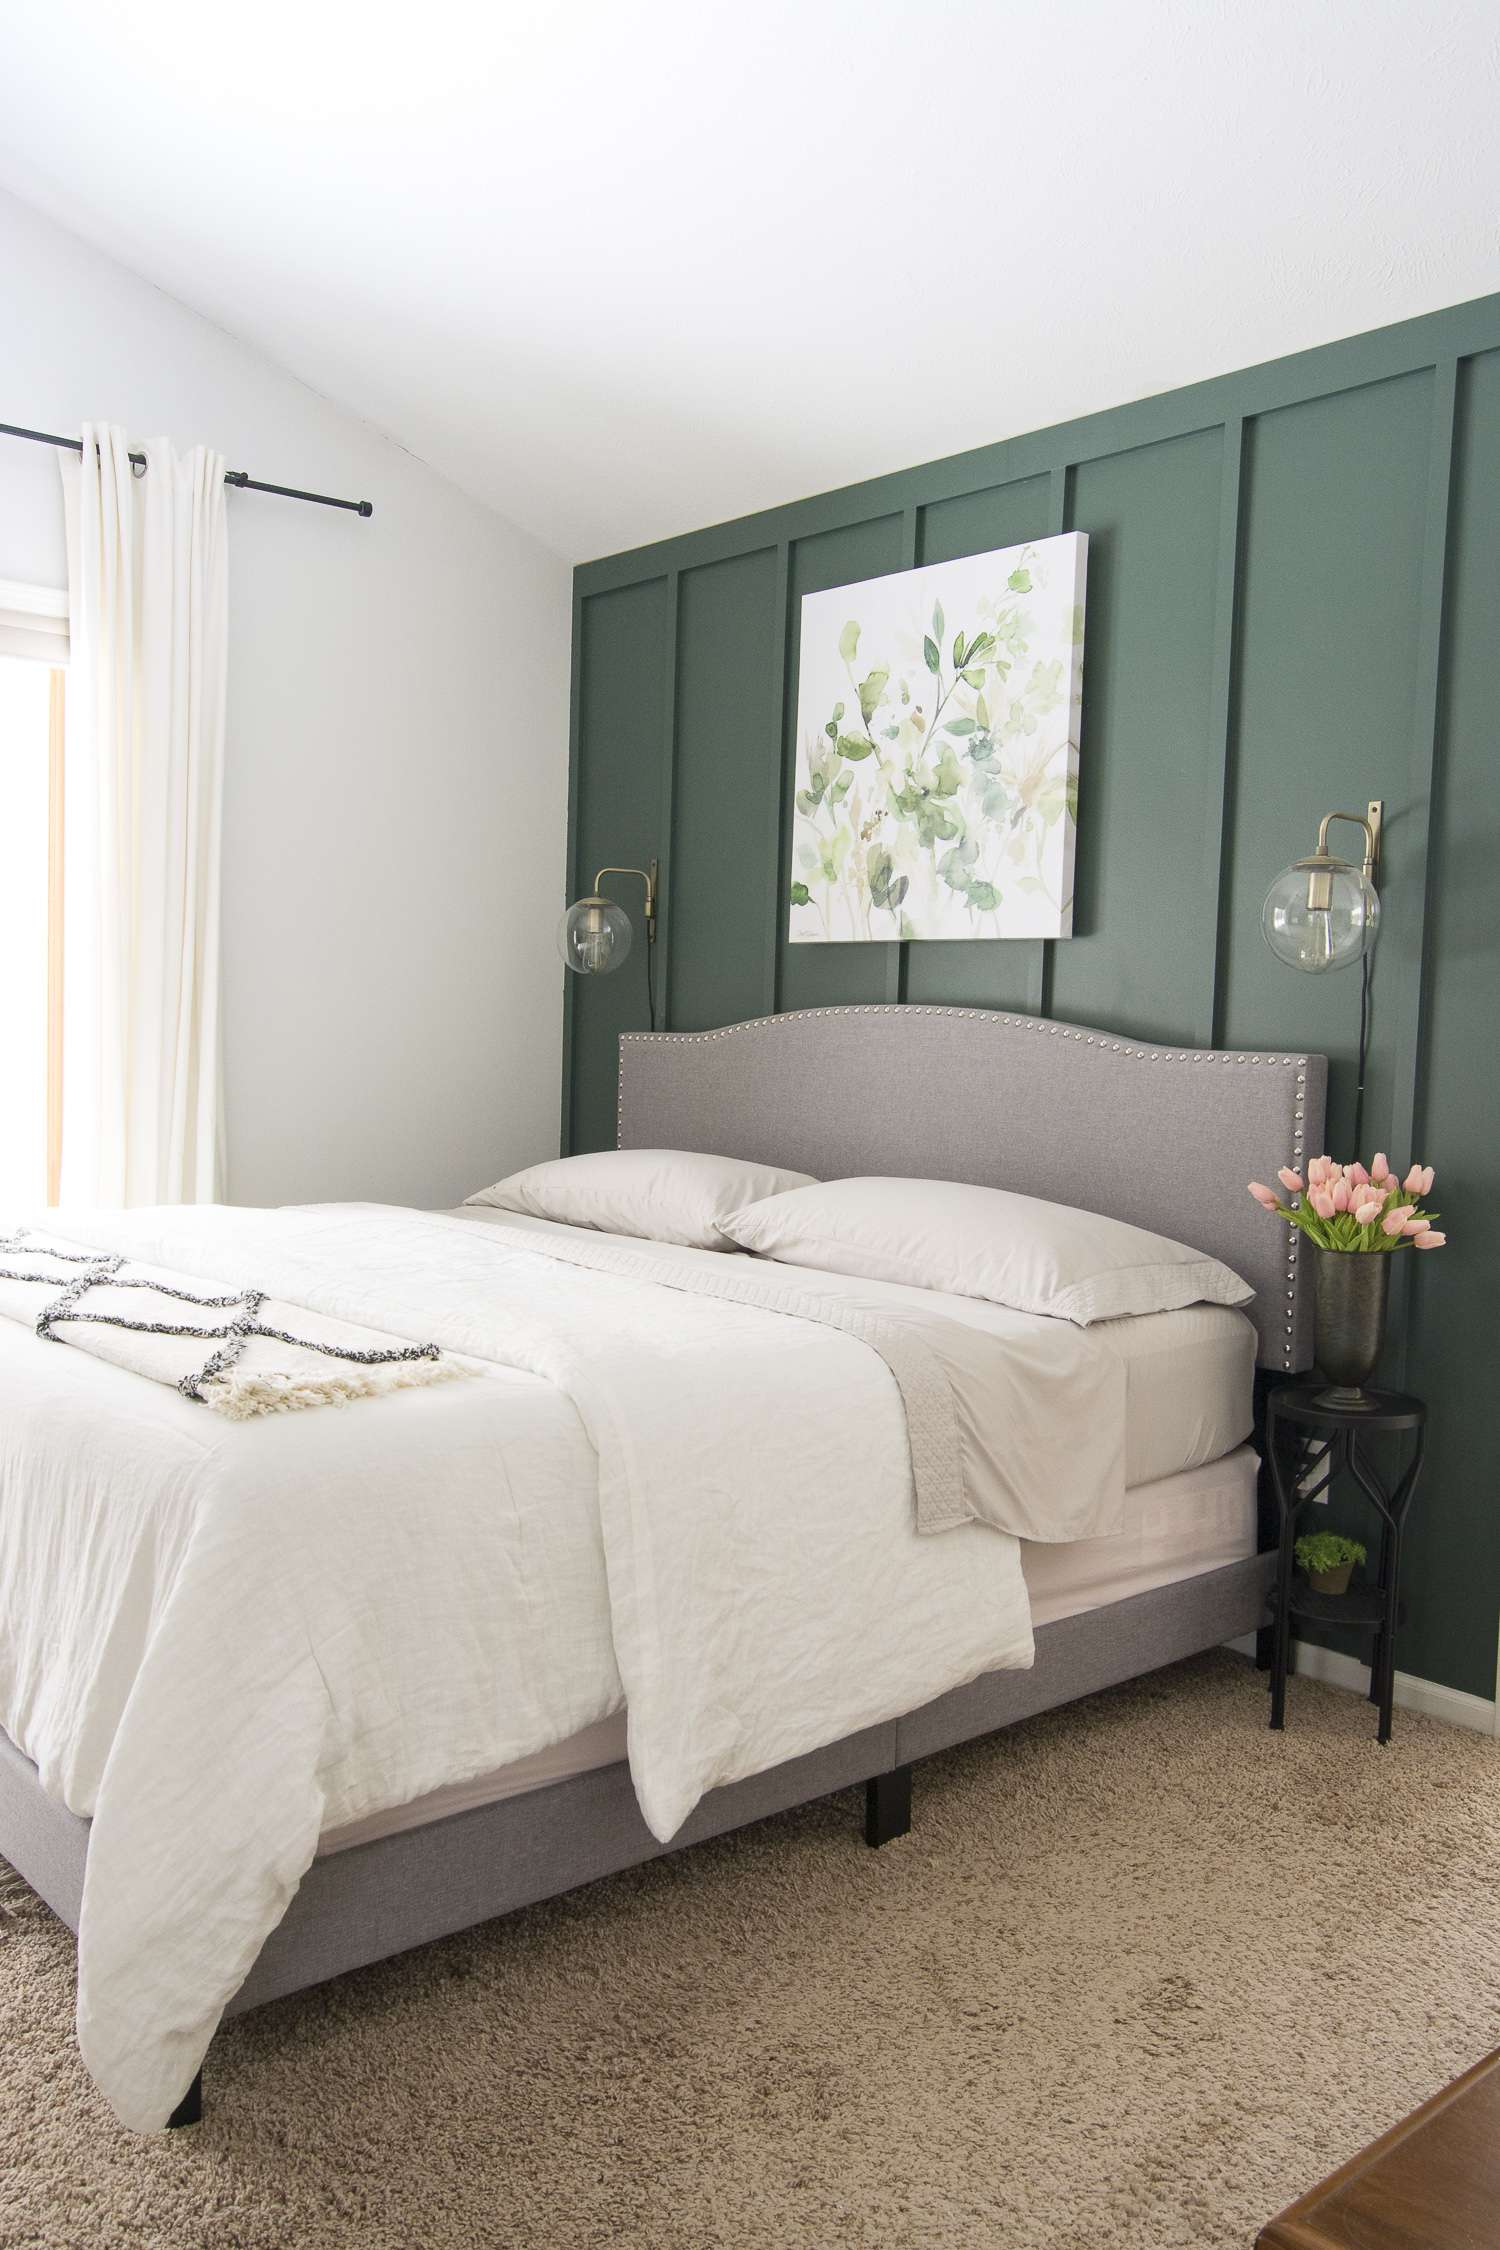 Are you looking for some cozy bedroom ideas for spring? Today I'm sharing how to make your bedroom cozy even as we head into the spring season. #fromhousetohaven #springbedroomideas #cozybedroomideas